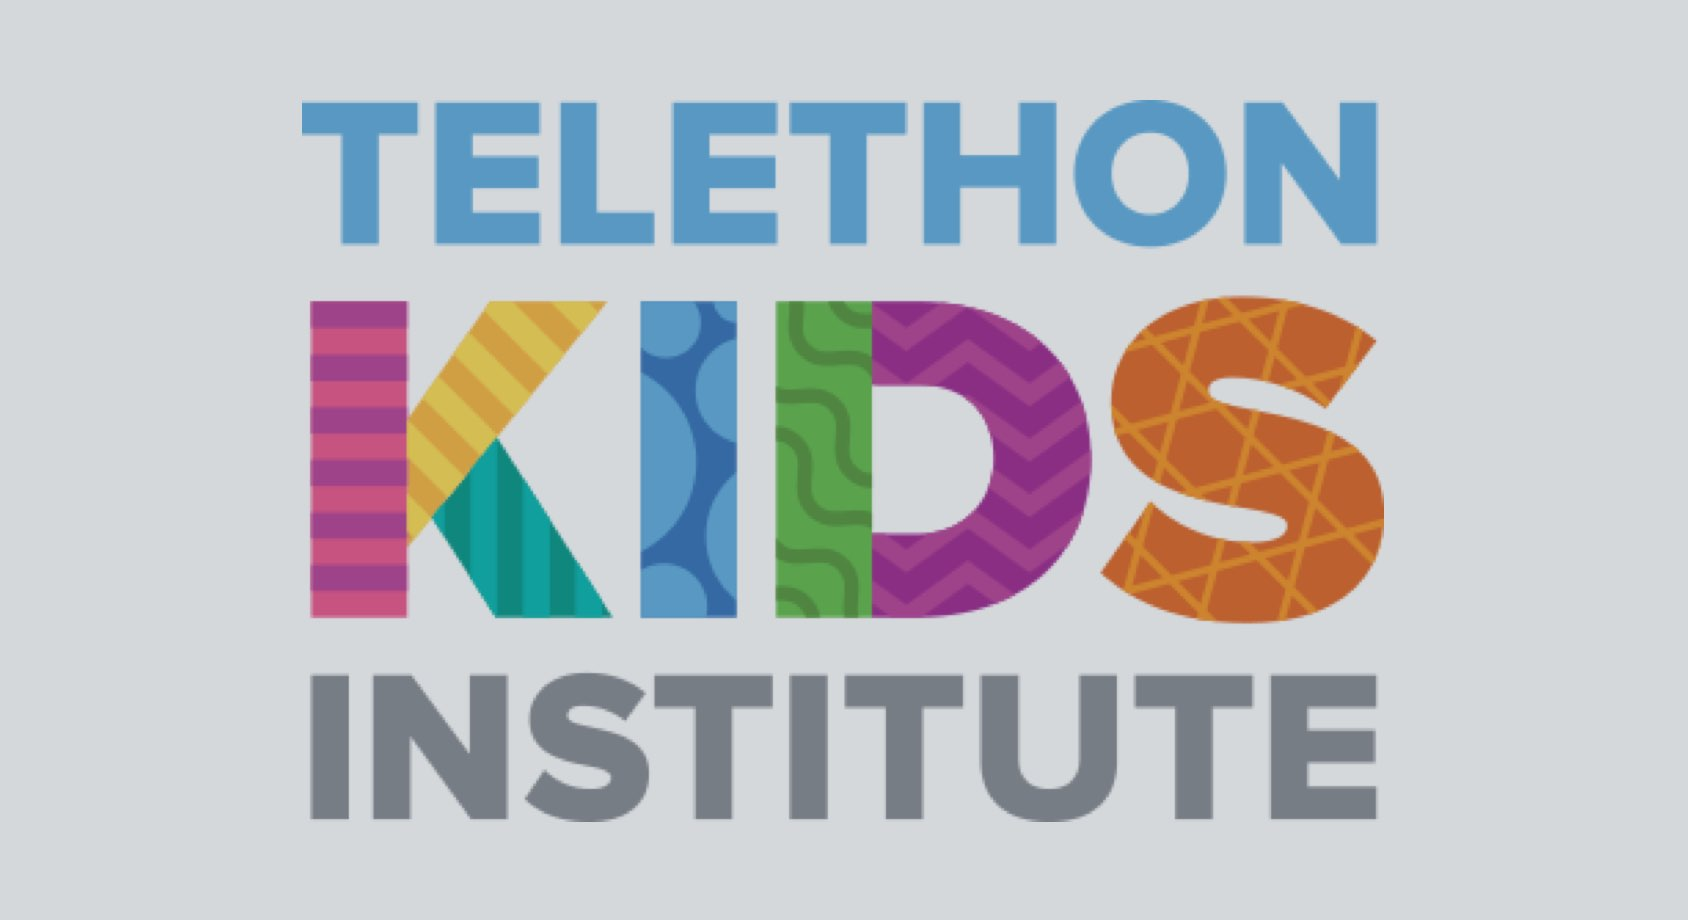 Telethon Kids empowers support into research that makes a difference